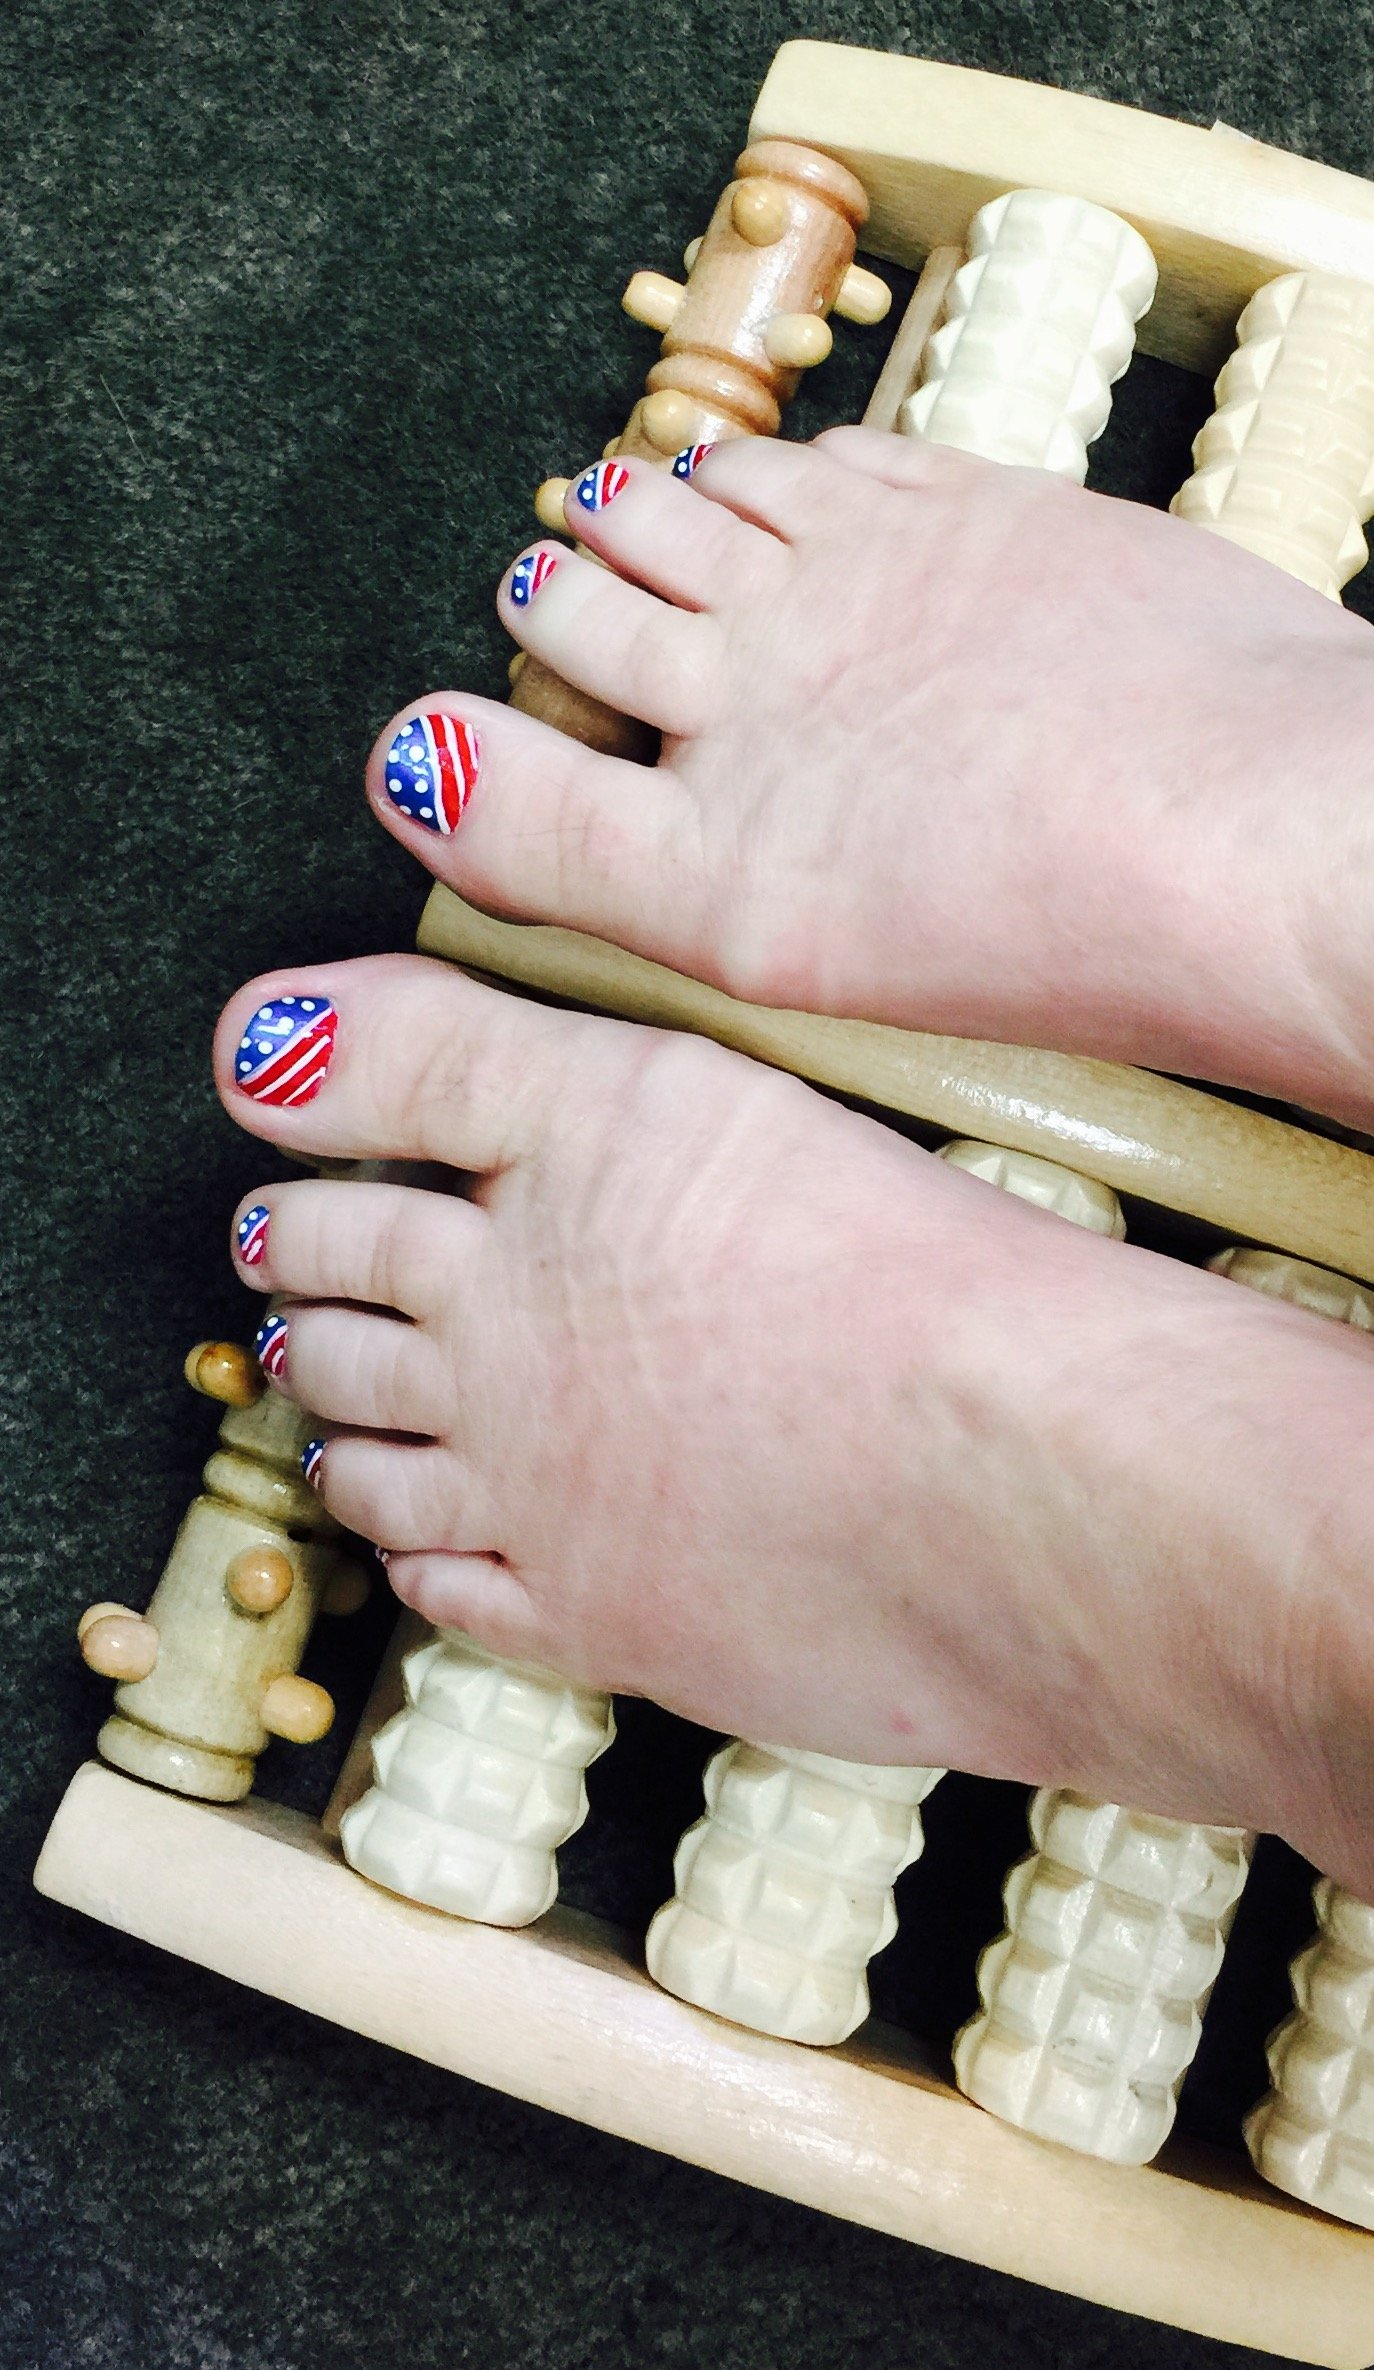 5-Roll Wooden Foot Massage Roller Plus 3 FREE bags of Foot Soak & Bath Herbs samples $10 Value by Shine Wellness Inc (Image #3)